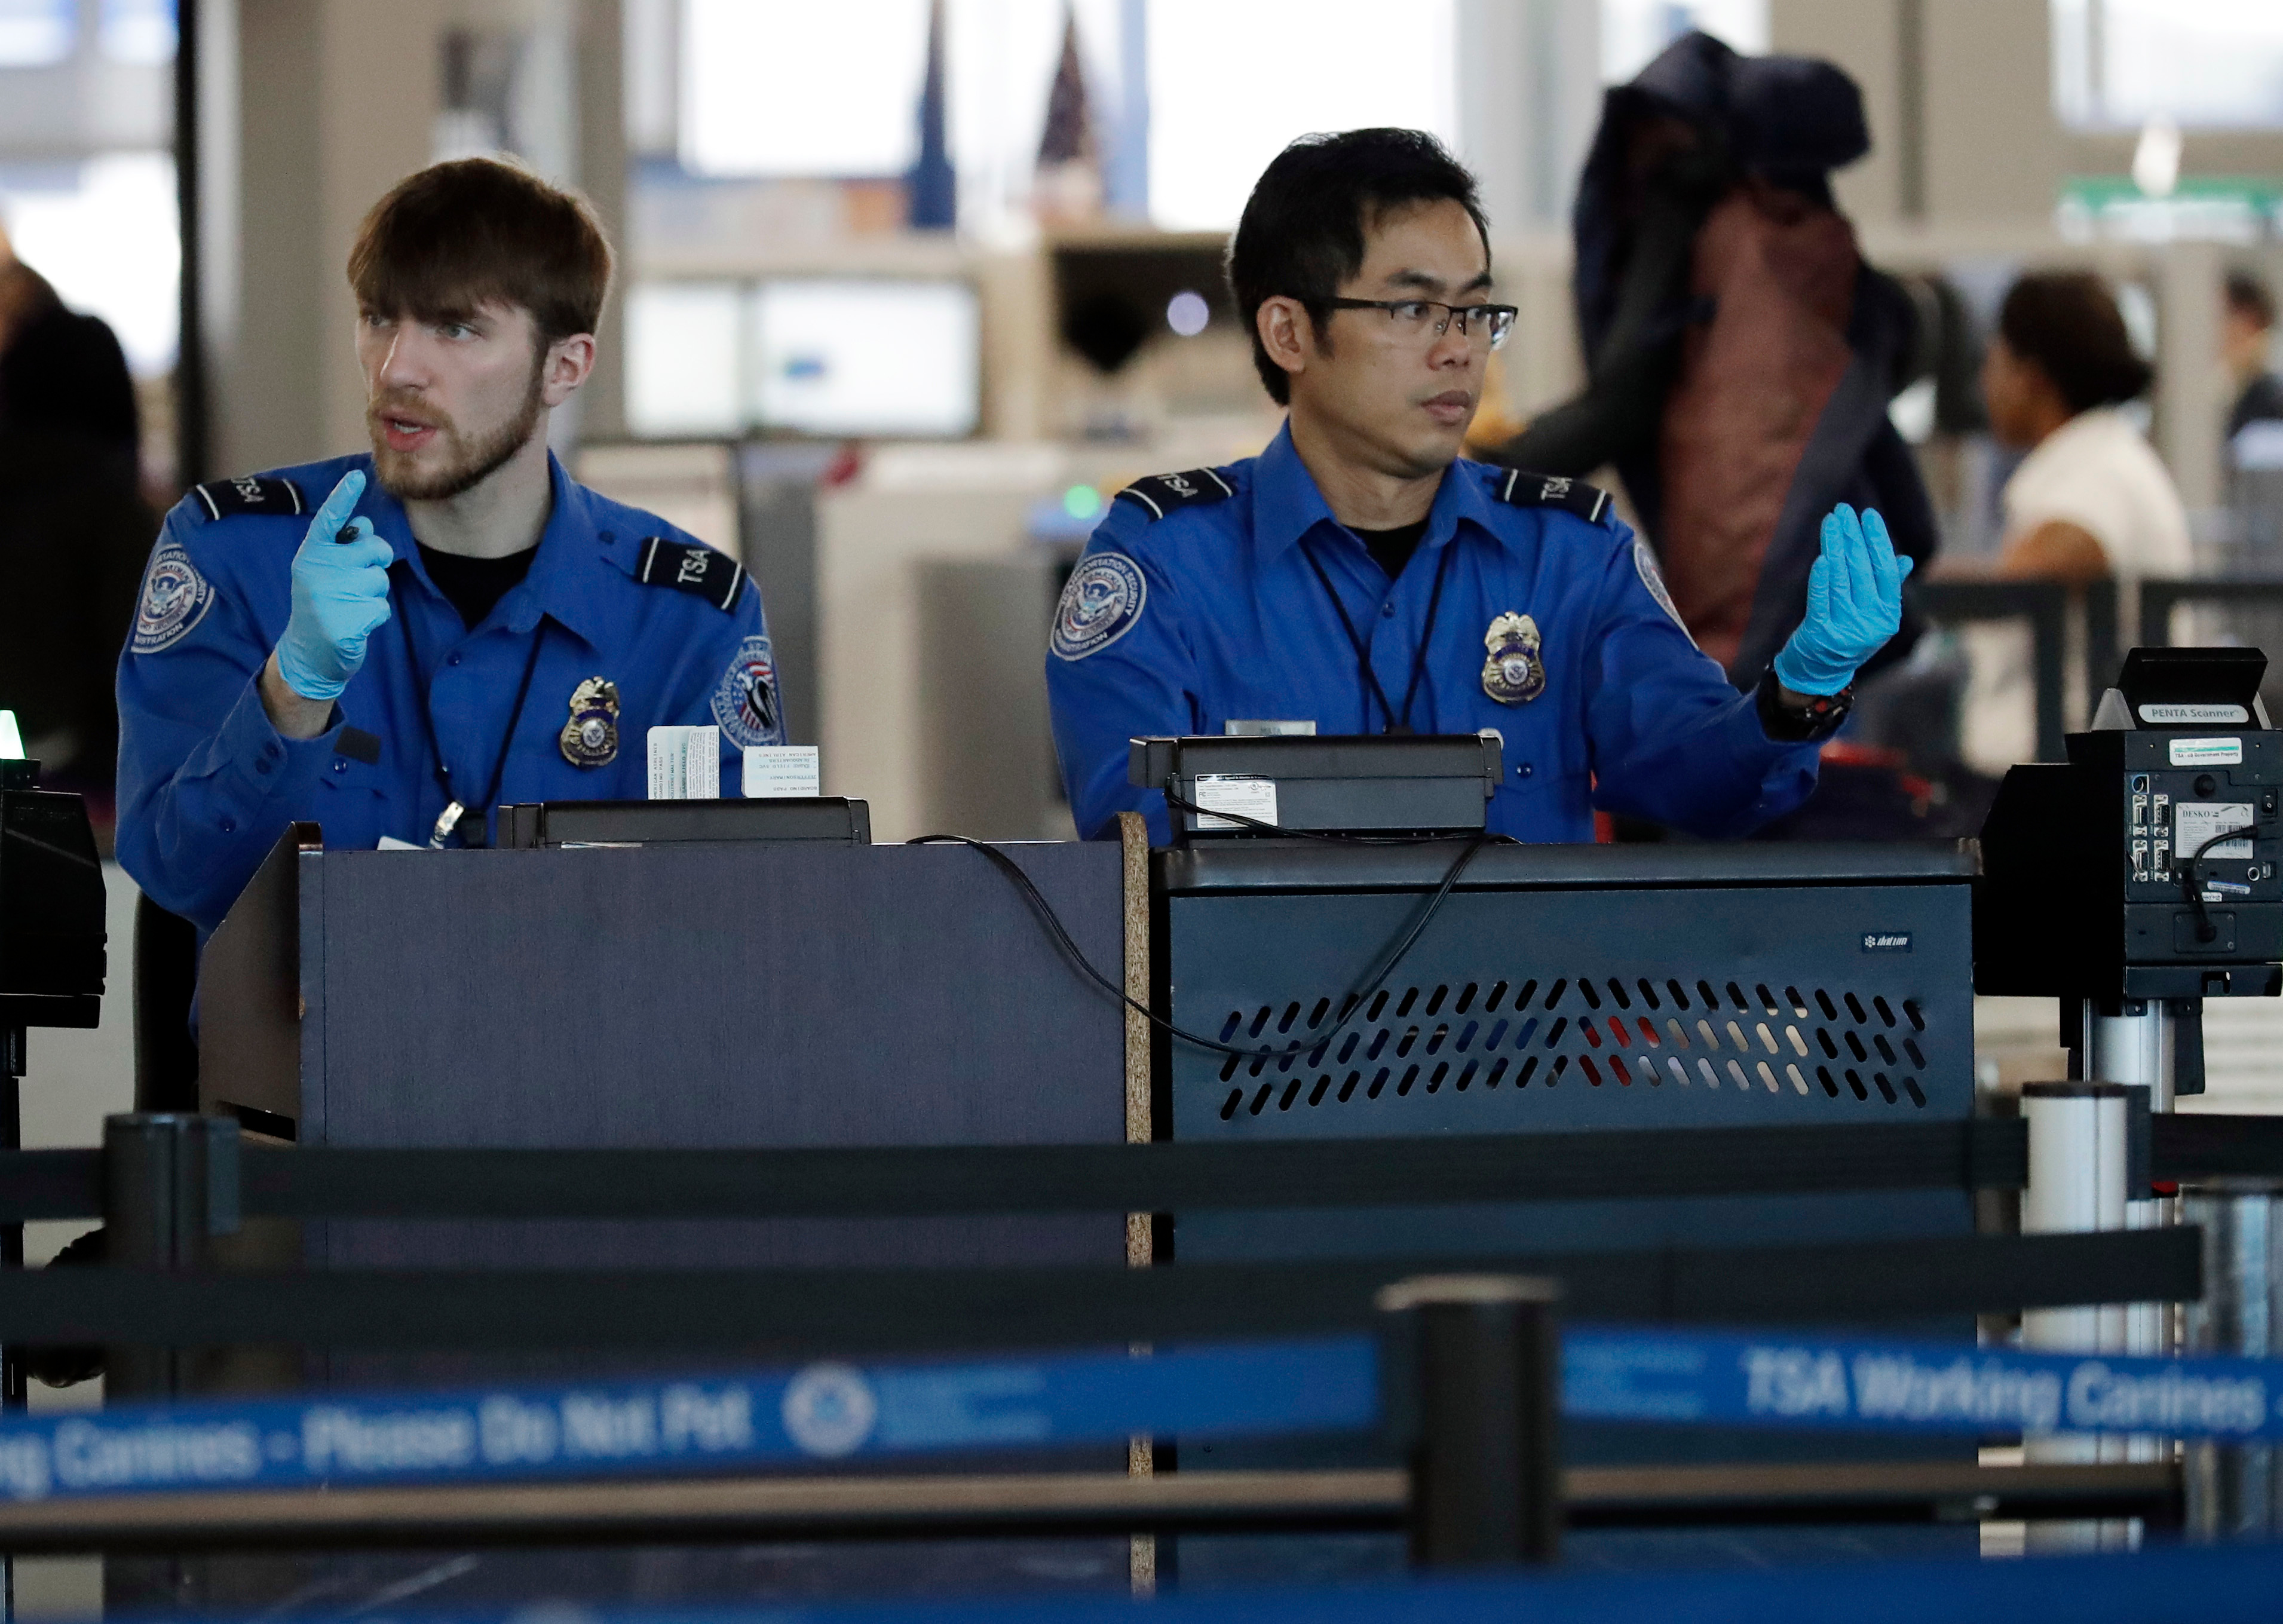 Transportation Security Administration officers work at a checkpoint at O'Hare airport in Chicago, Il. on Jan. 5, 2019.